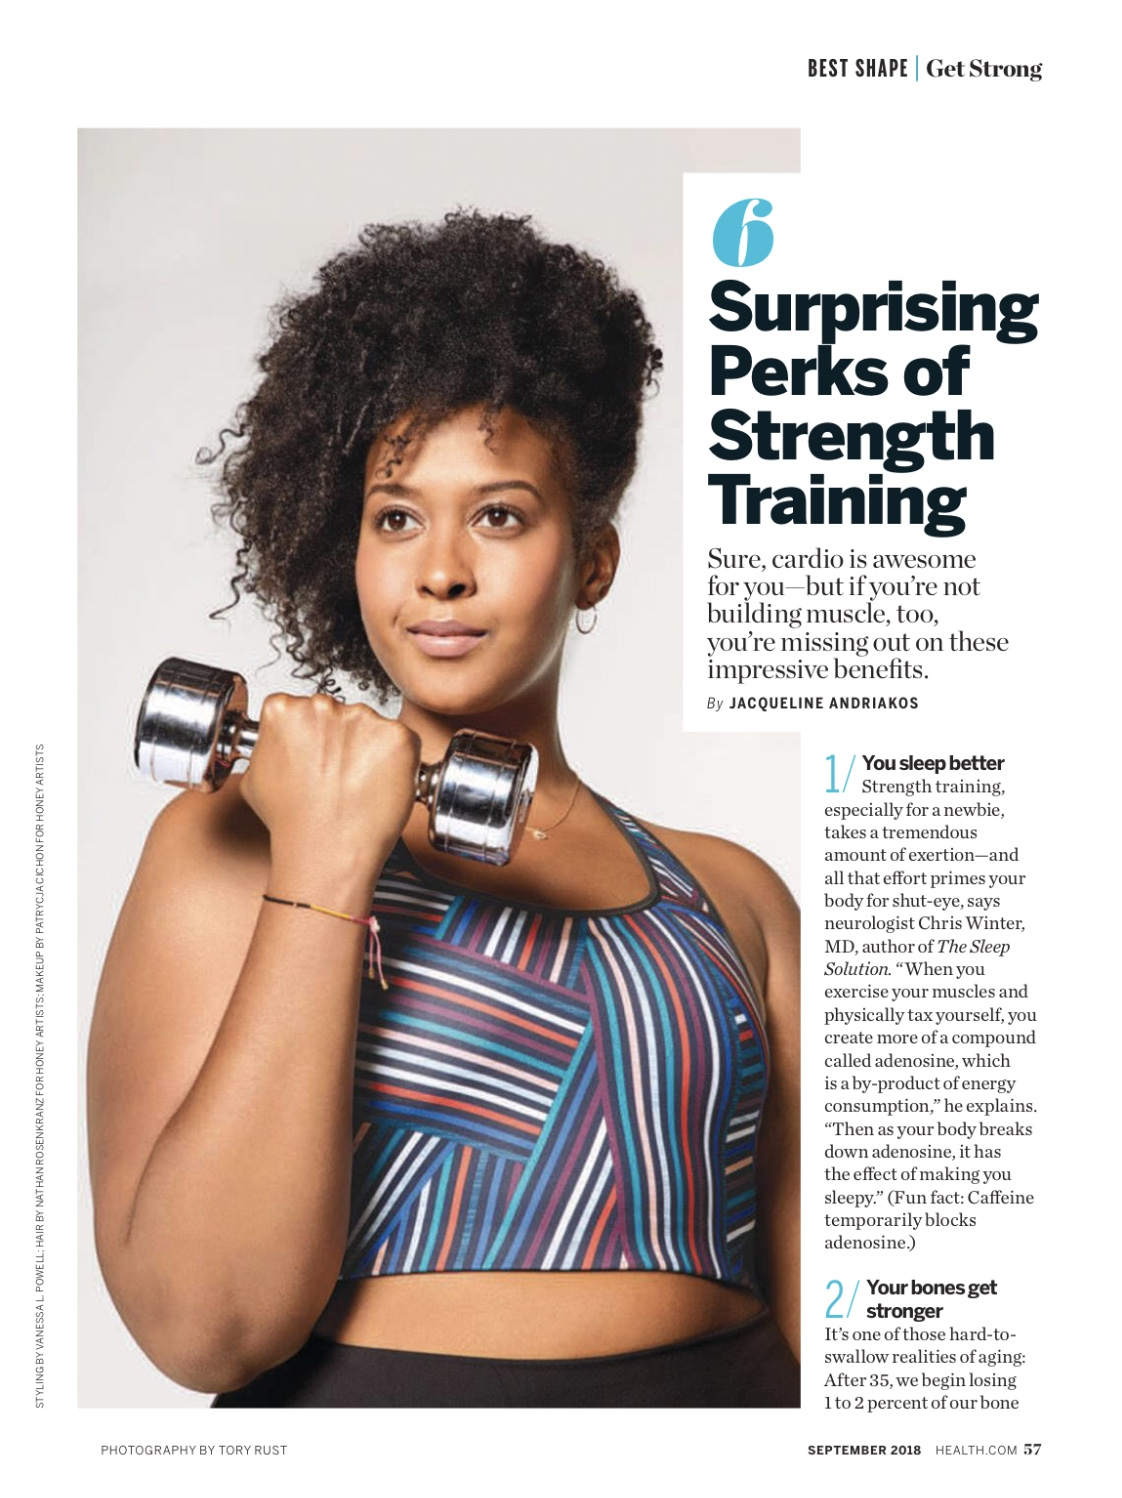 Health Magazine - September 2018